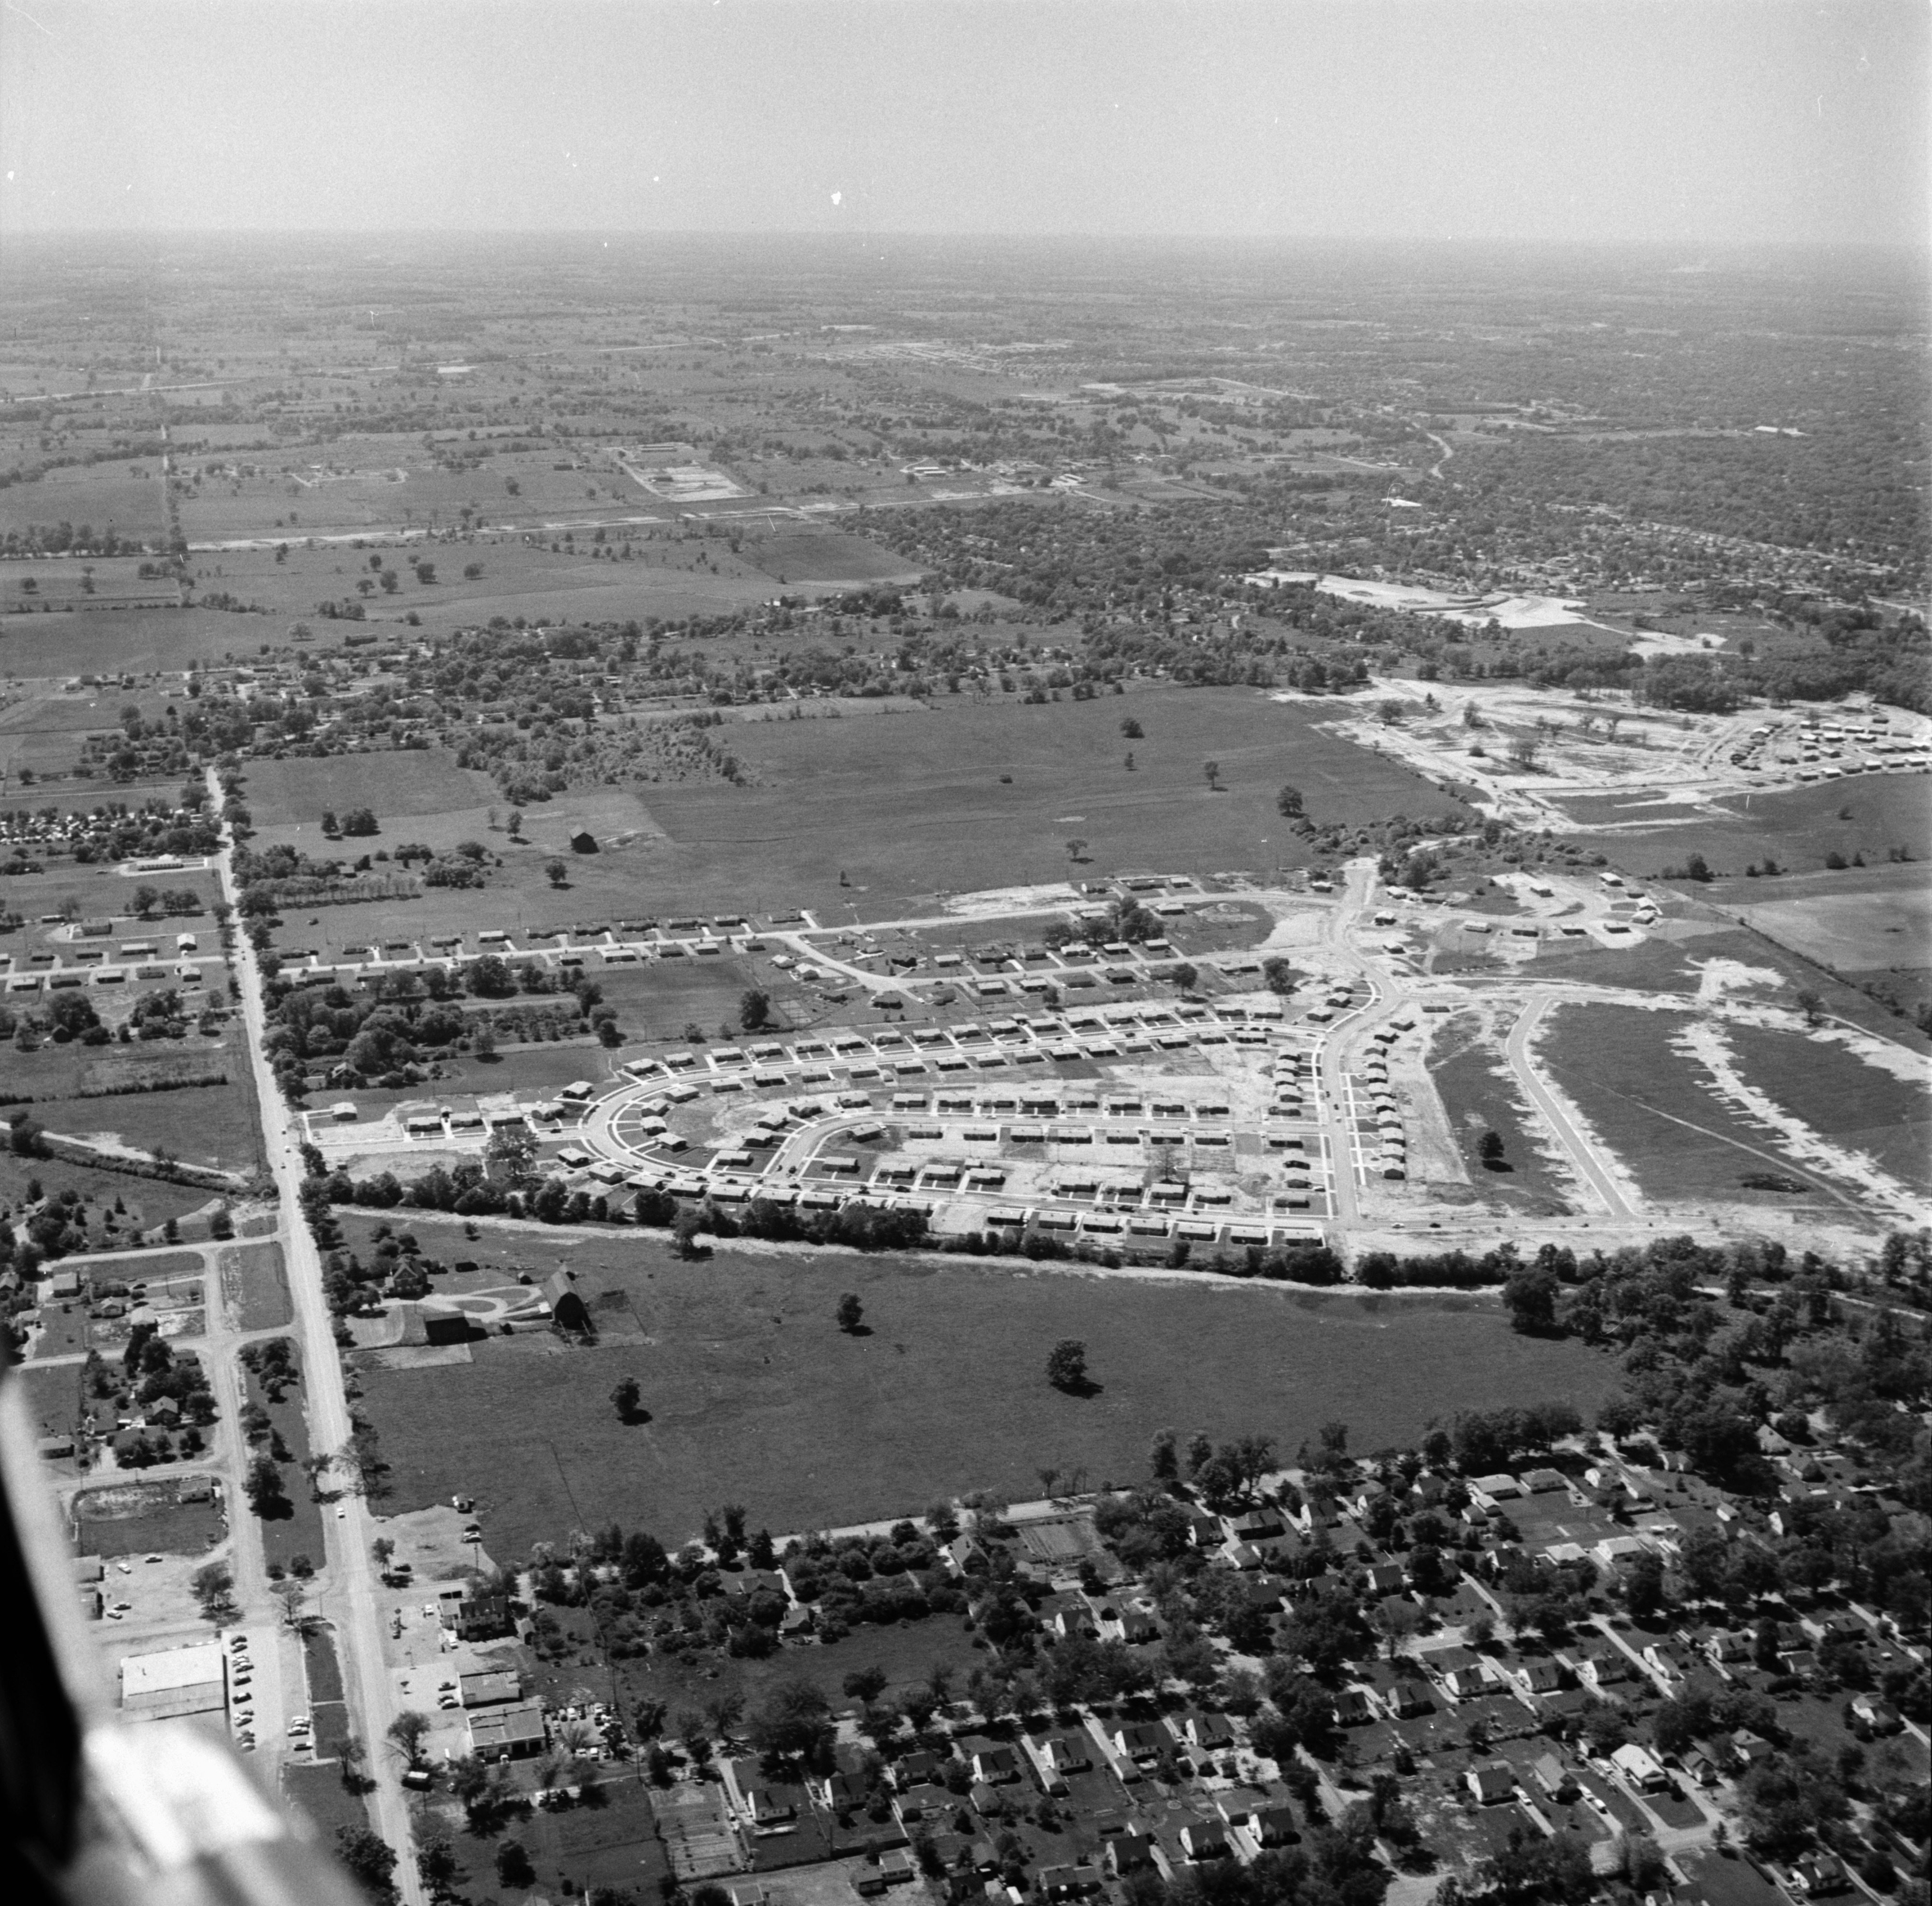 Aerial Photograph of Kensington Farms Subdivision, July 1957 image